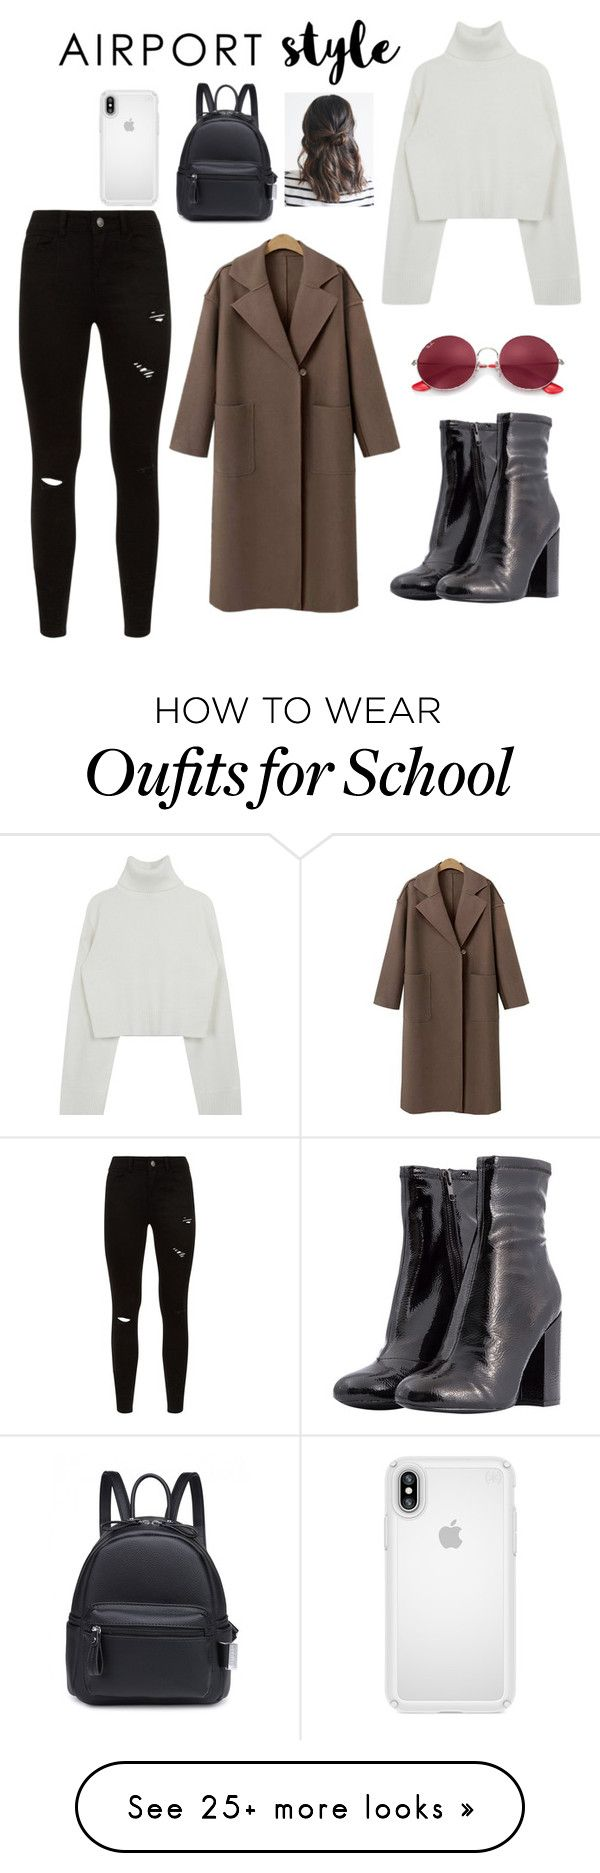 """Style"" by abdulkhalik22 on Polyvore featuring Steve Madden, Ray-Ban, Speck and airportstyle"